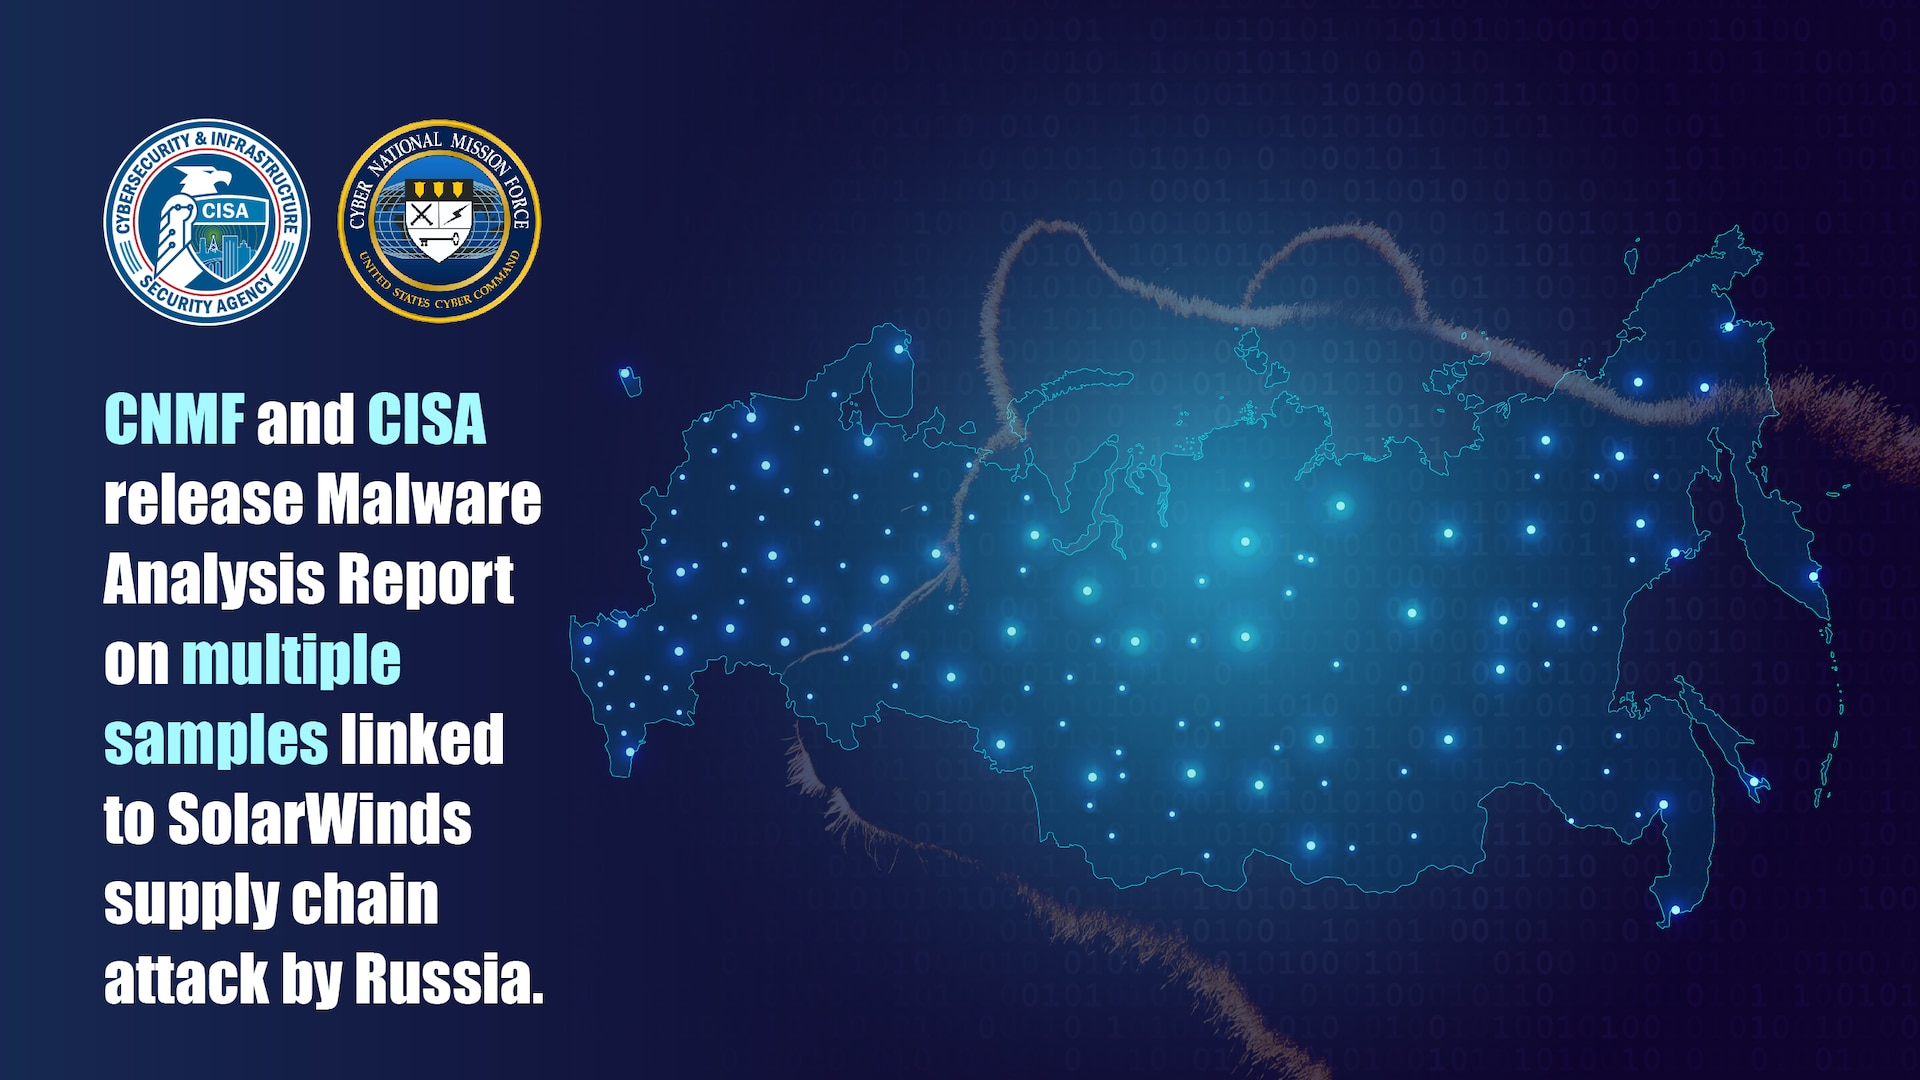 CNMF and CISA release Malware Analysis Report on multiple samples linked to SolarWinds supply chain attack by Russia.